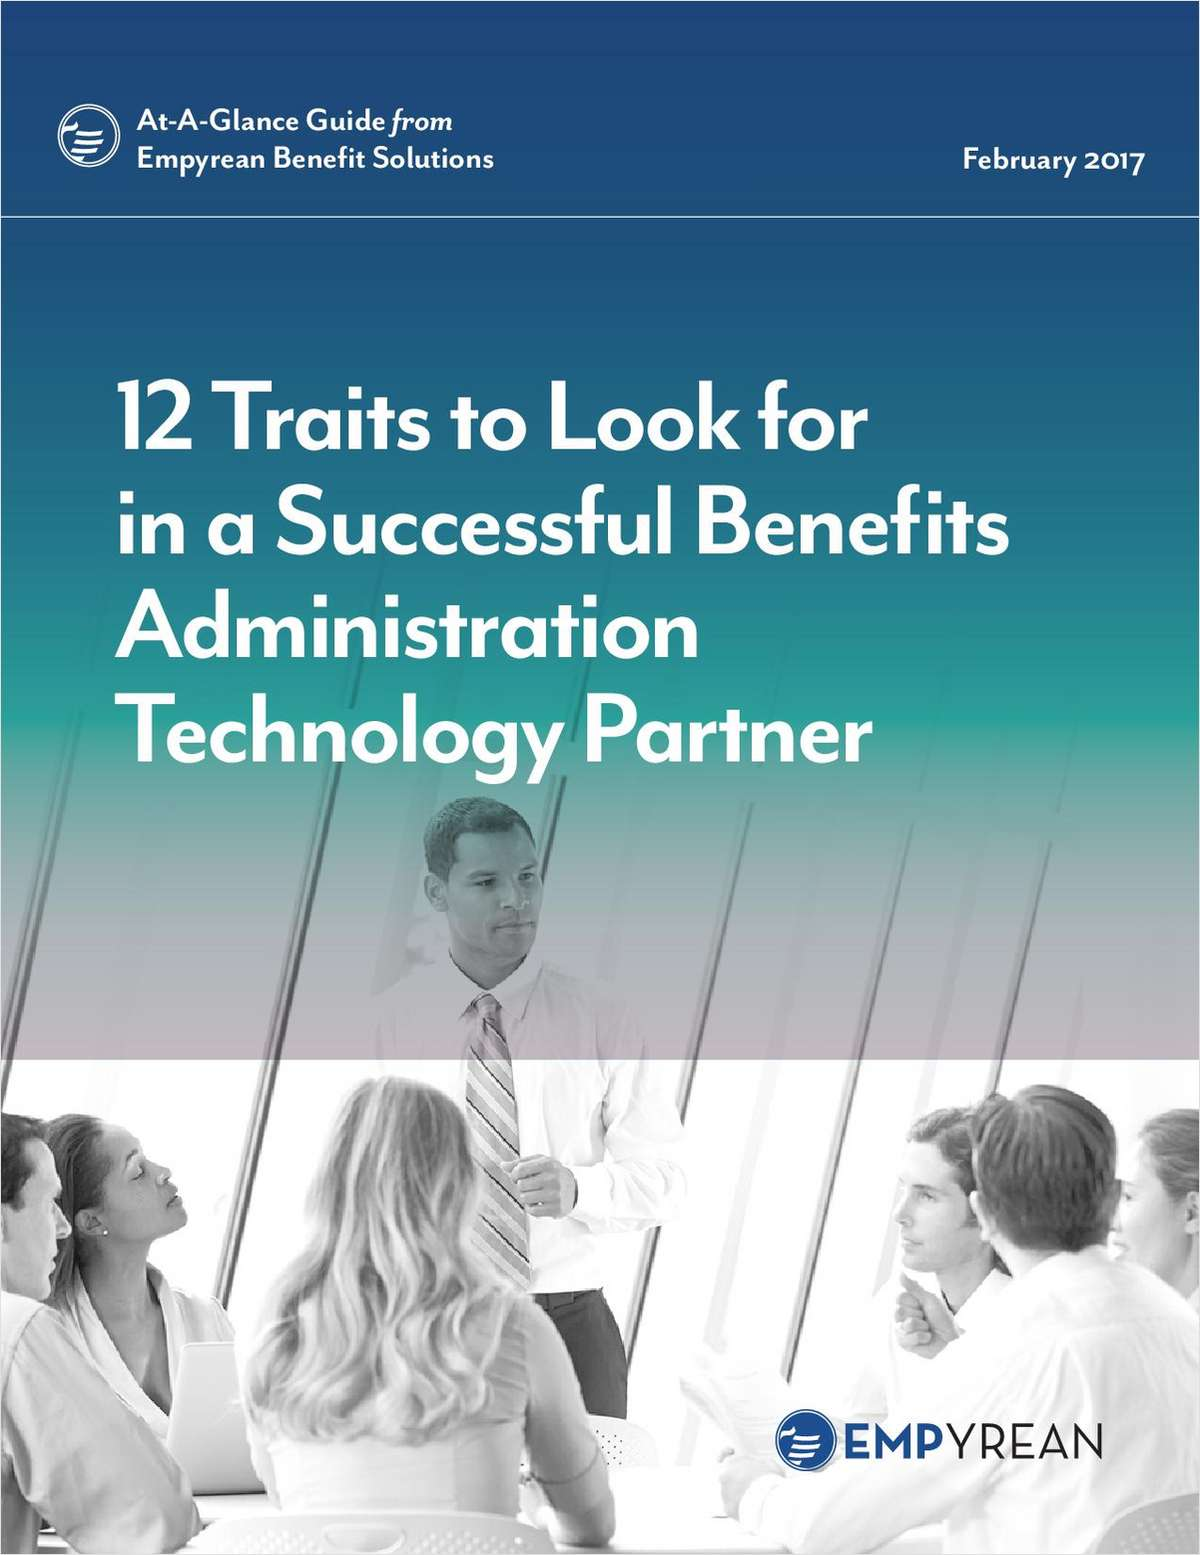 12 Traits to Look for in a Successful Benefits Administration Technology Partner